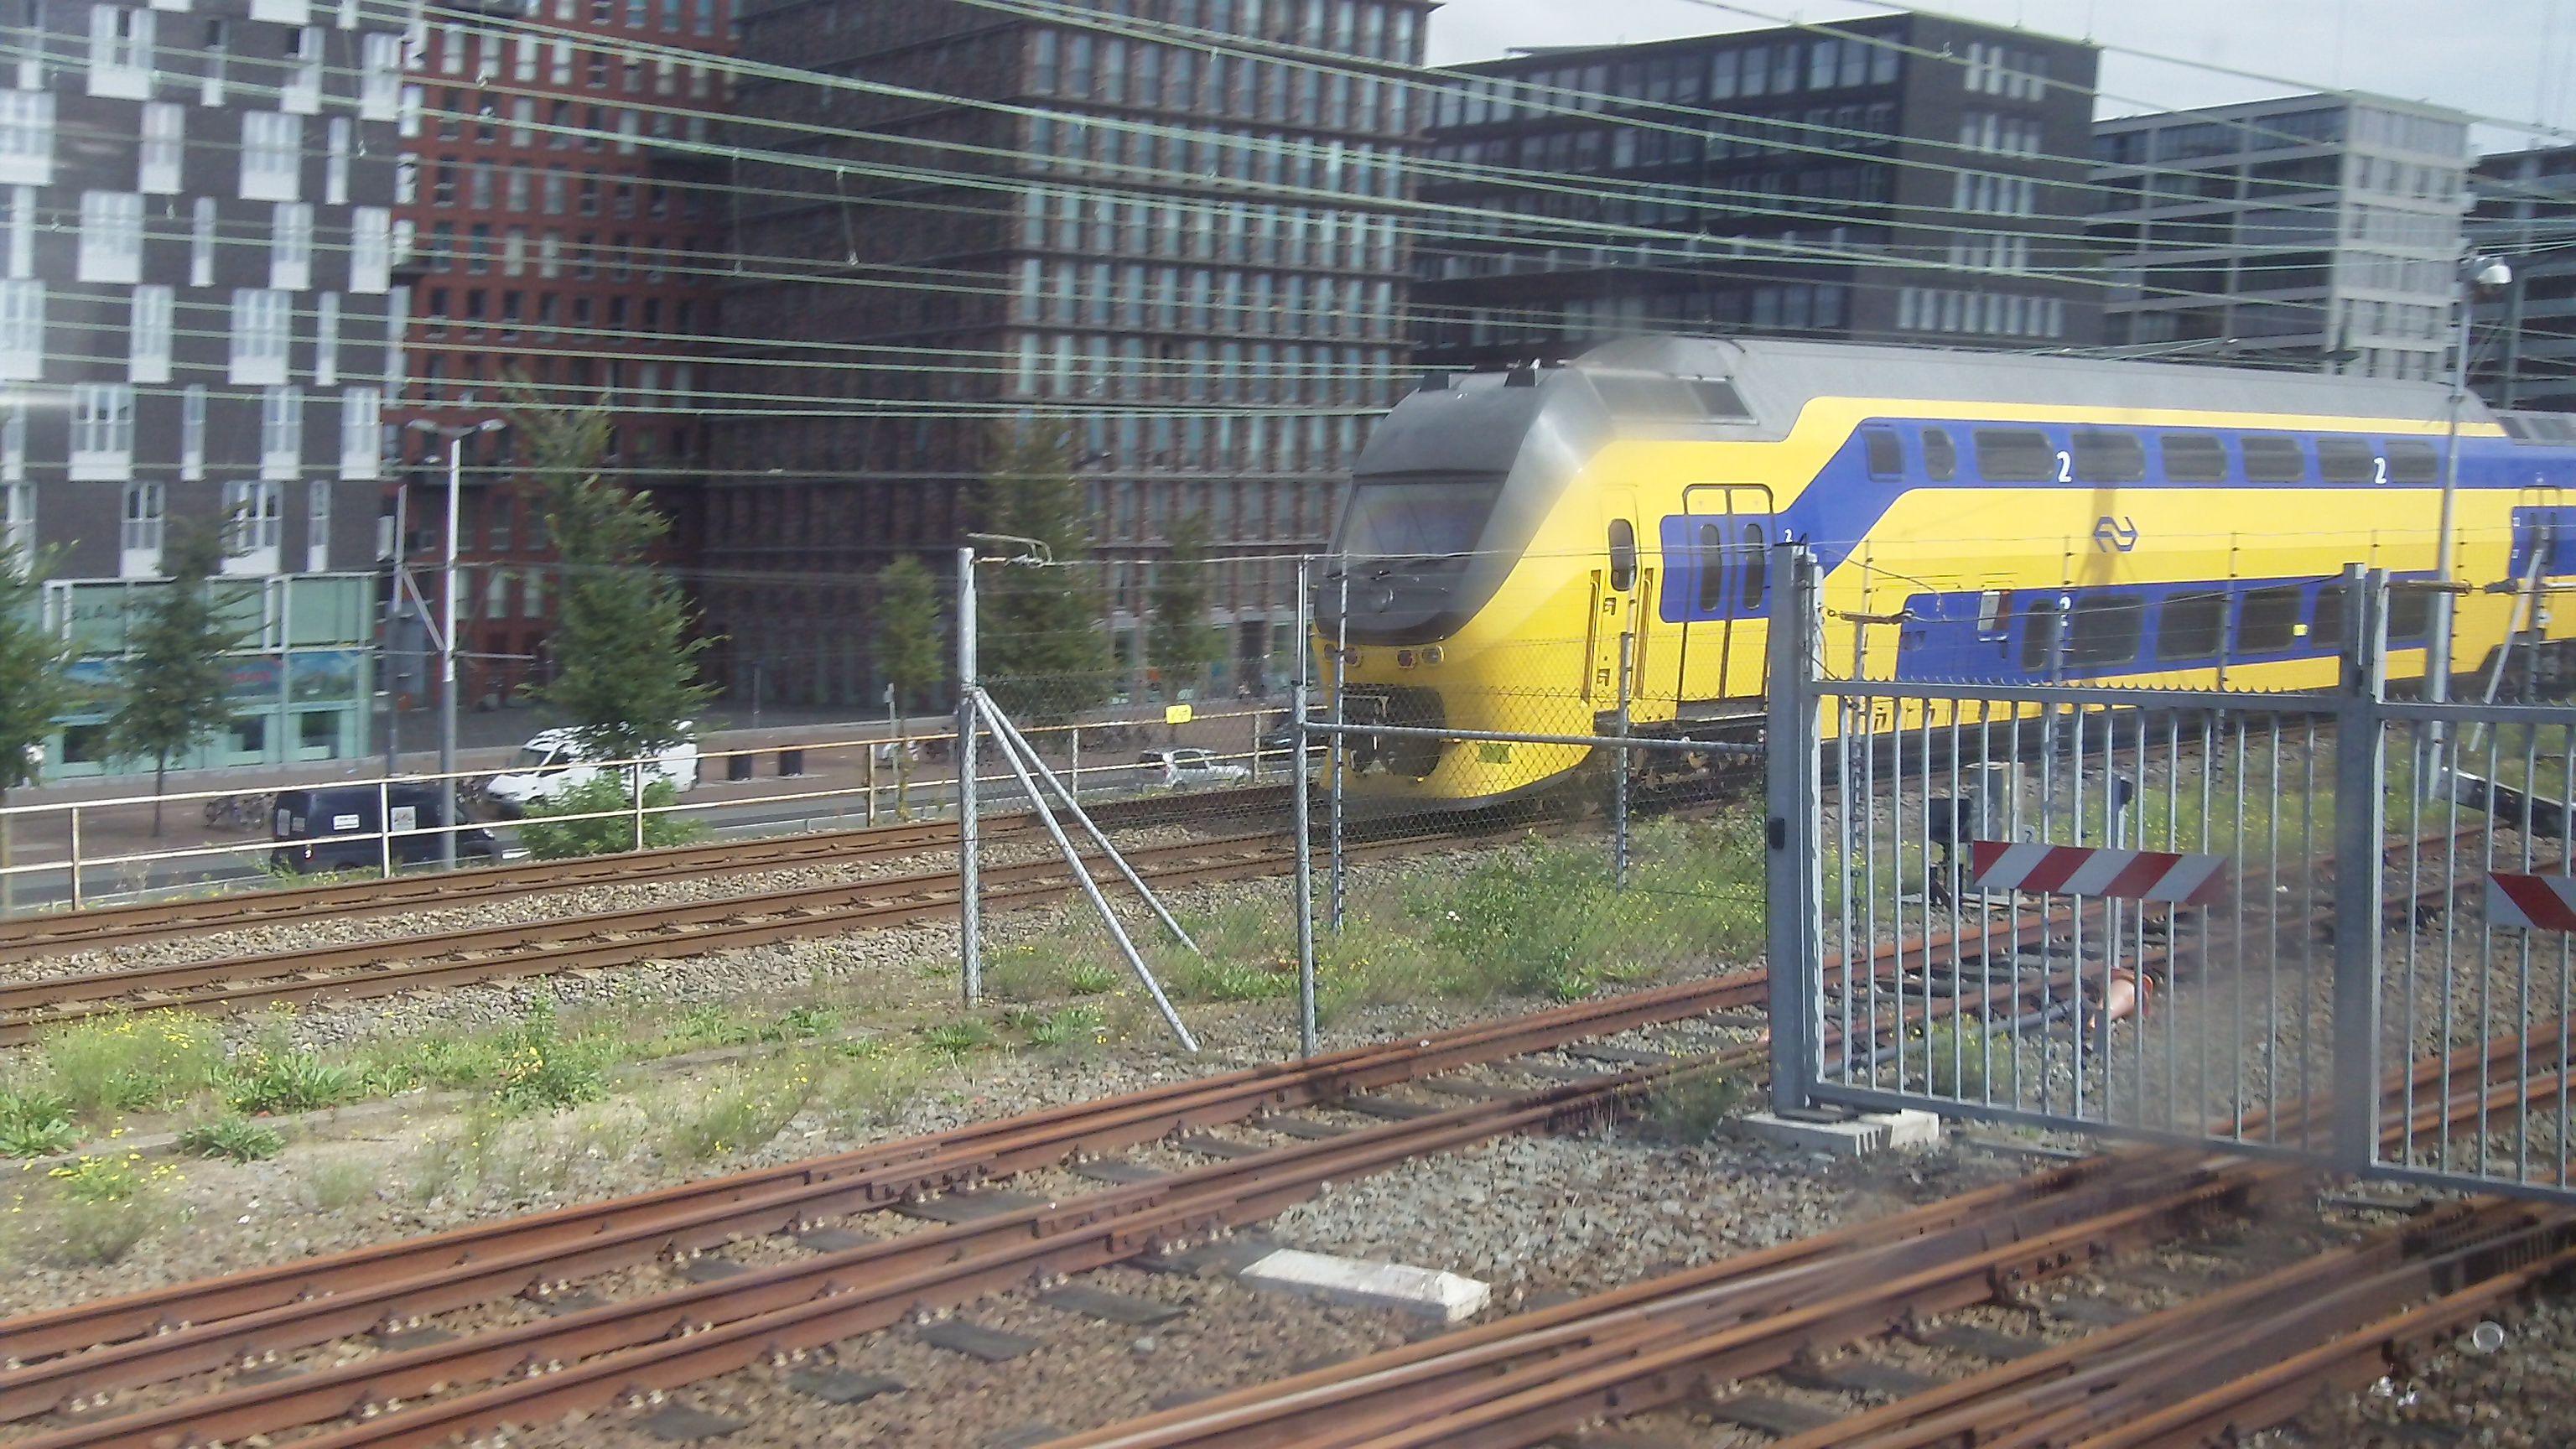 Click to view larger image of passing a commuter train while on board an inter-city express train. Amsterdam, Netherlands. September 2014